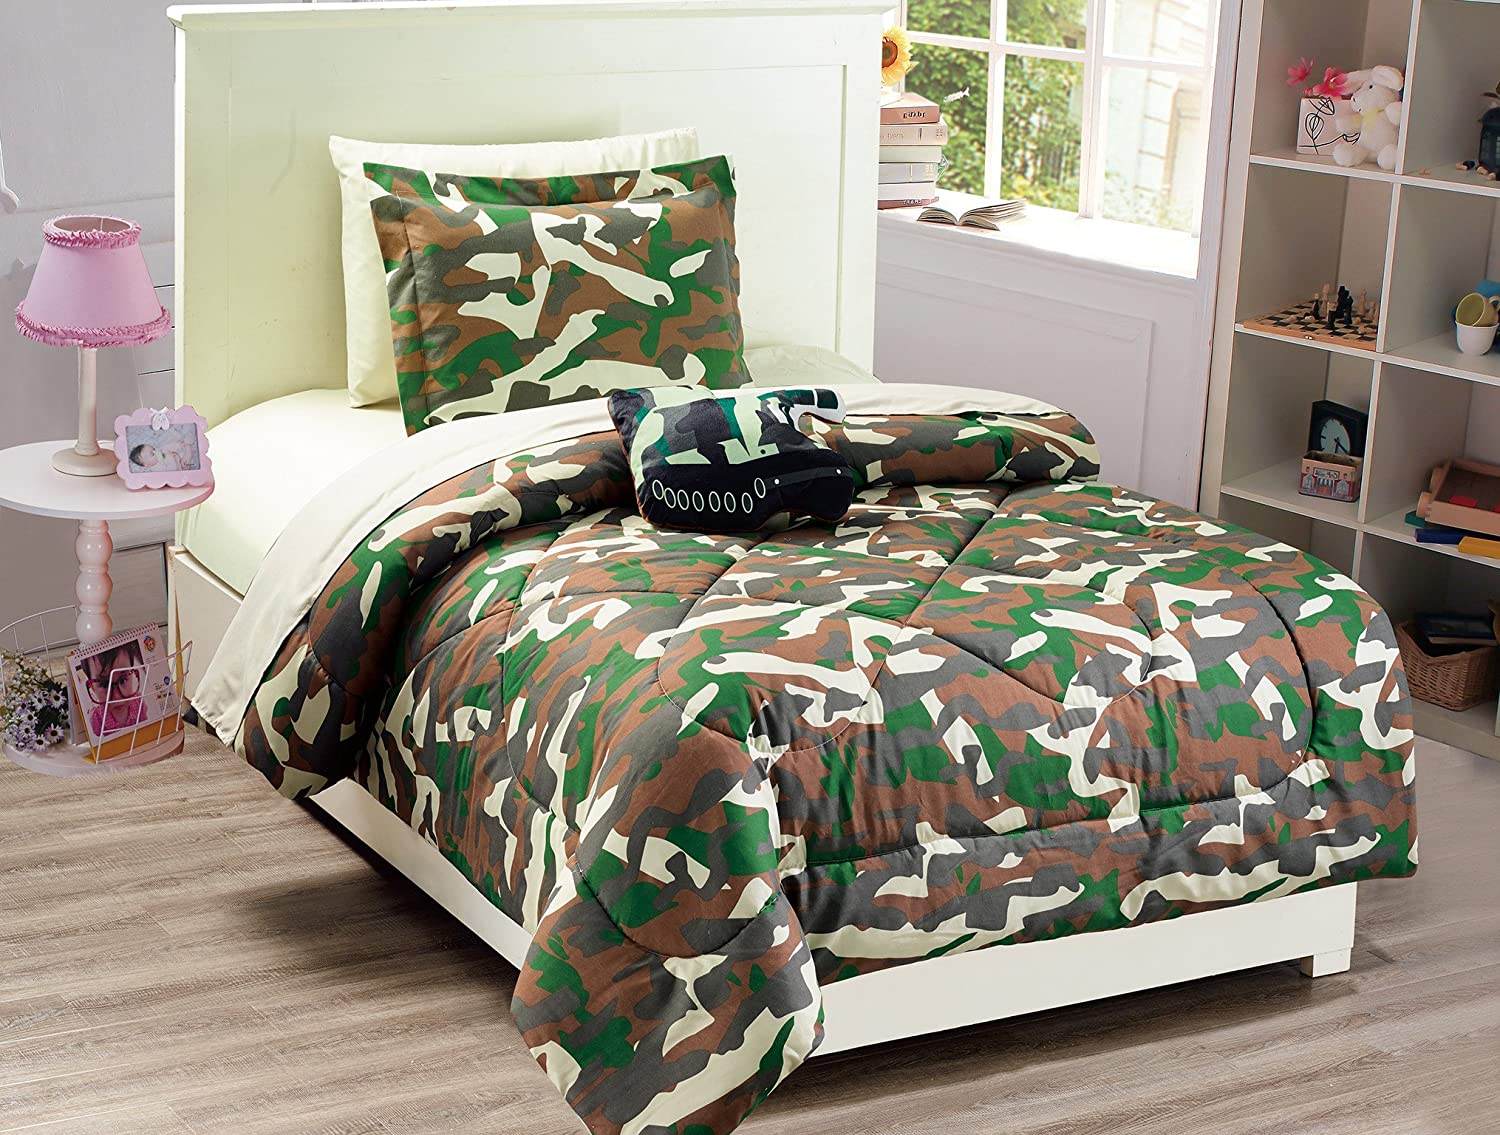 Mk Collection 8 PC Kids/Teens Full Size Tank Army Camouflage Military Green Brown Beige Light Brown Comforter and Sheet Set with Furry Buddy Included New